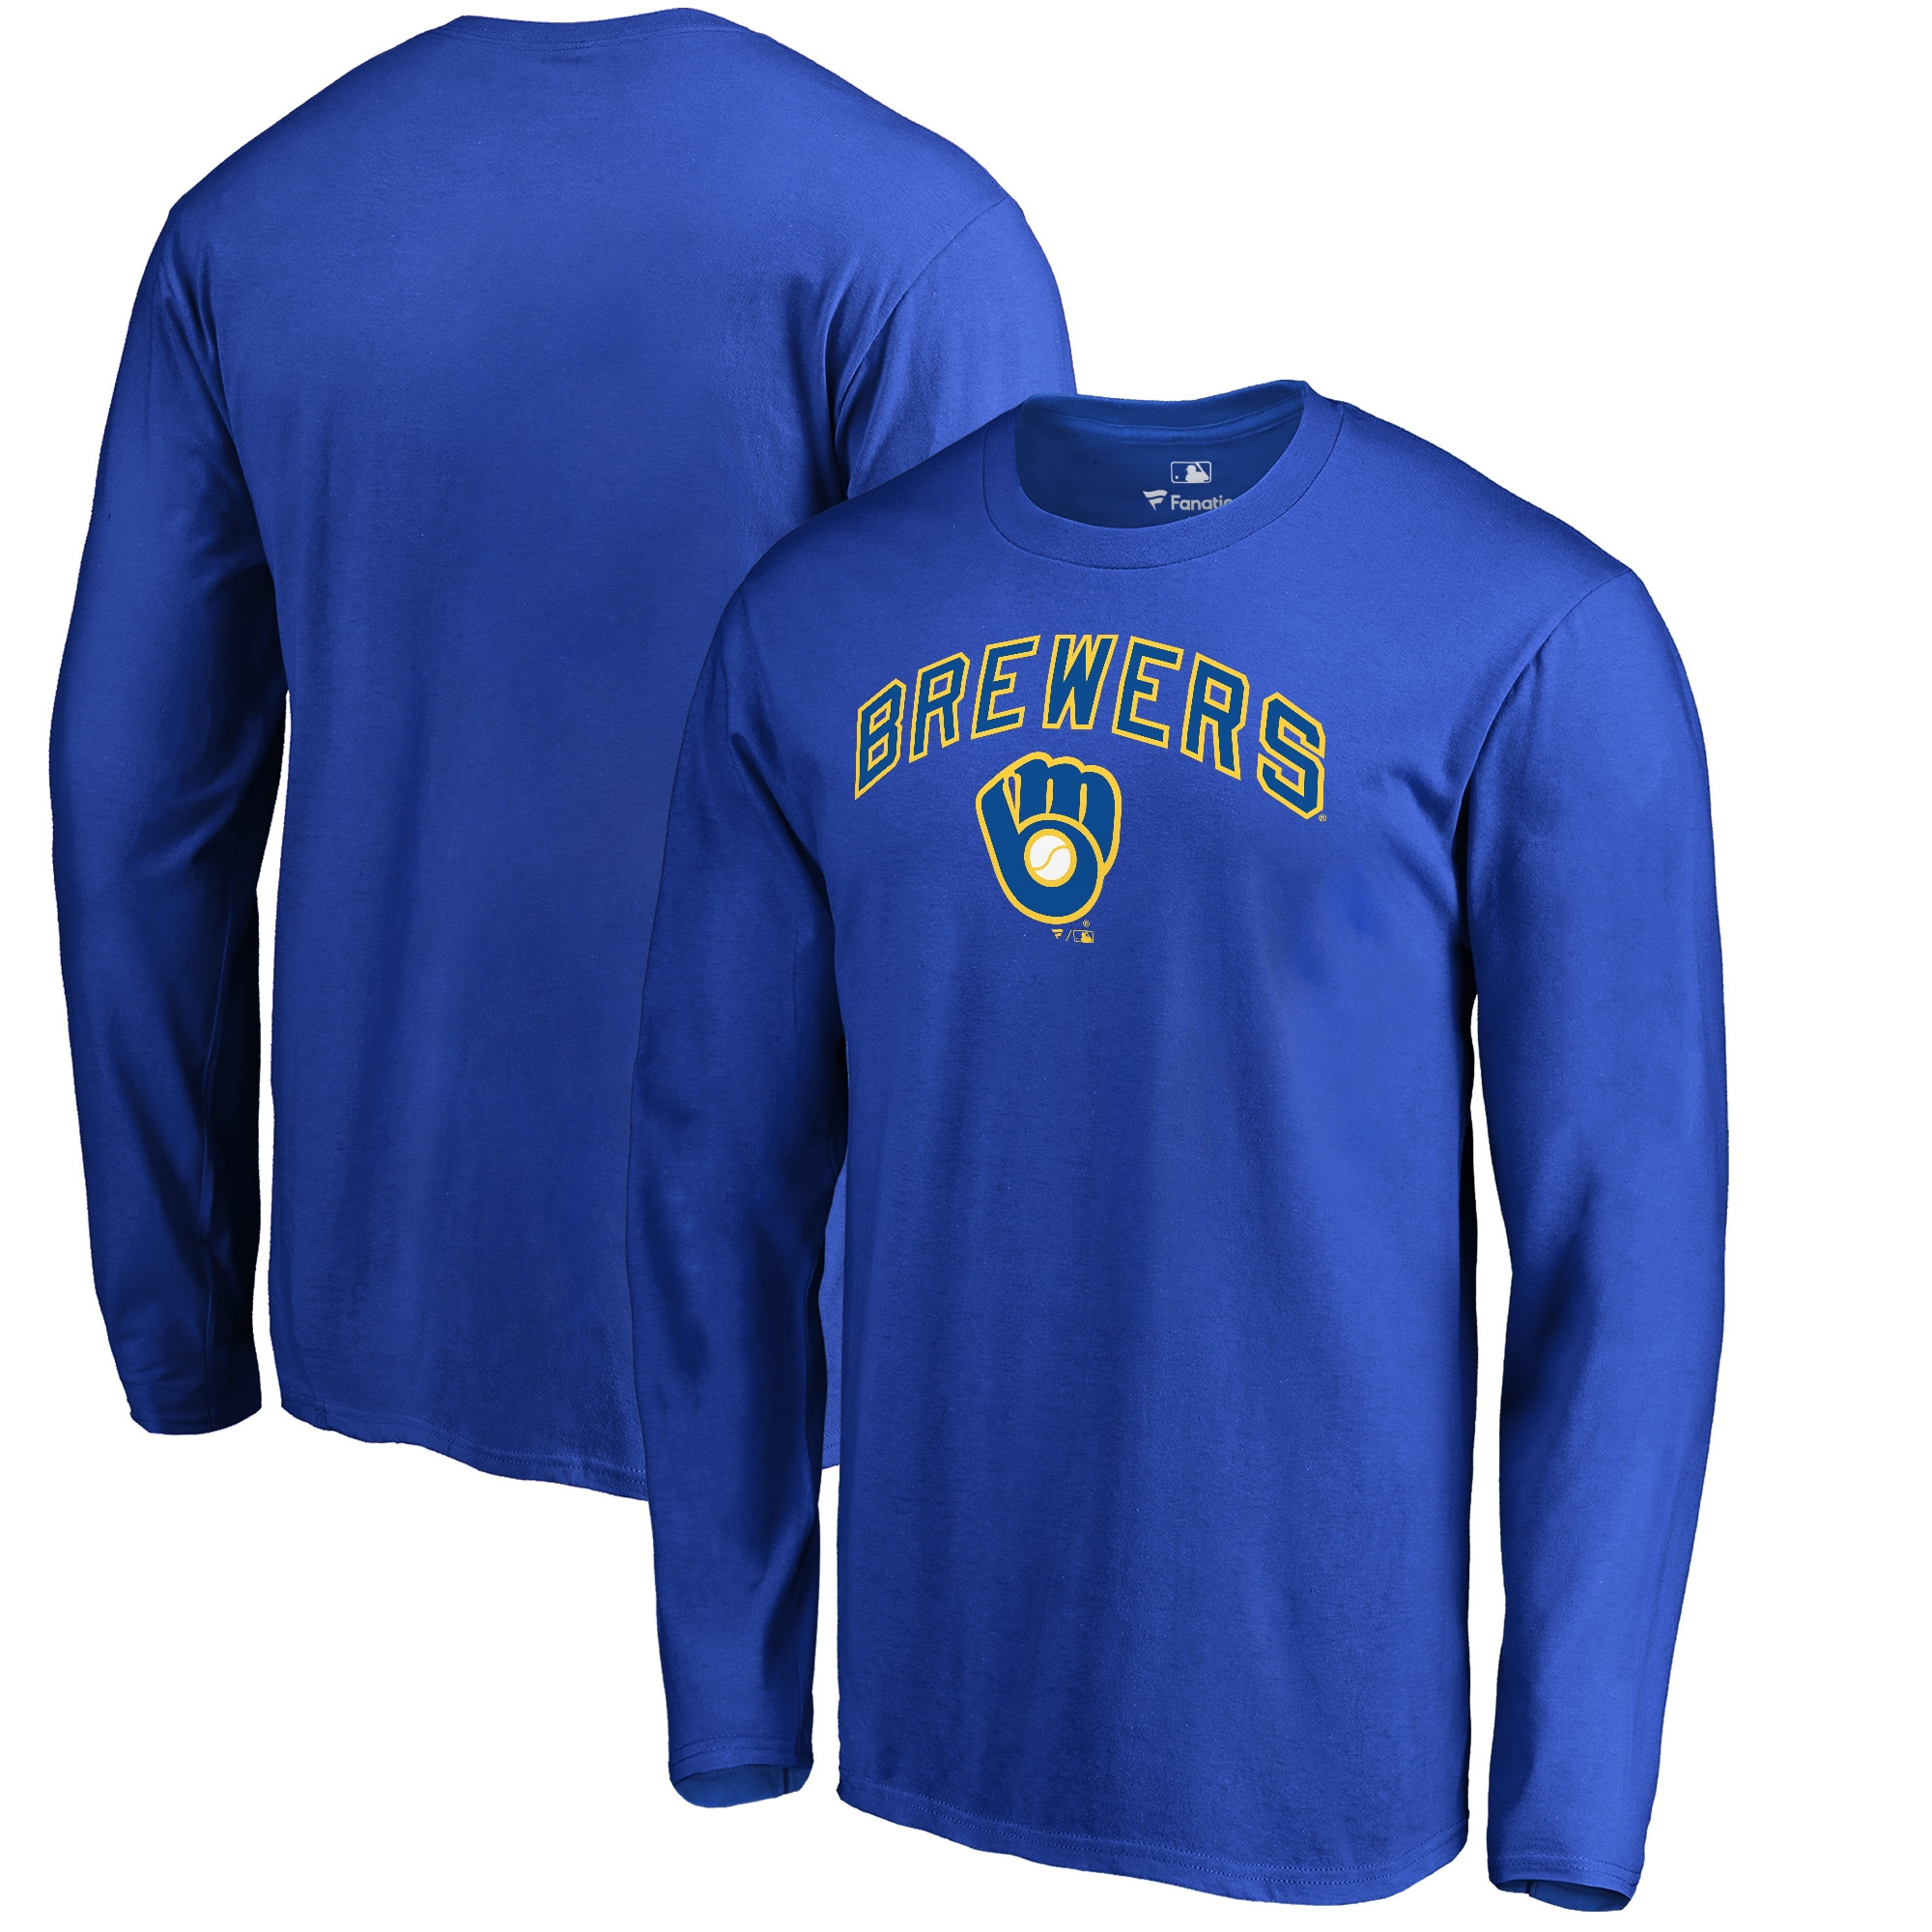 Milwaukee Brewers Fanatics Branded Cooperstown Collection Wahconah Long Sleeve T-Shirt - Royal